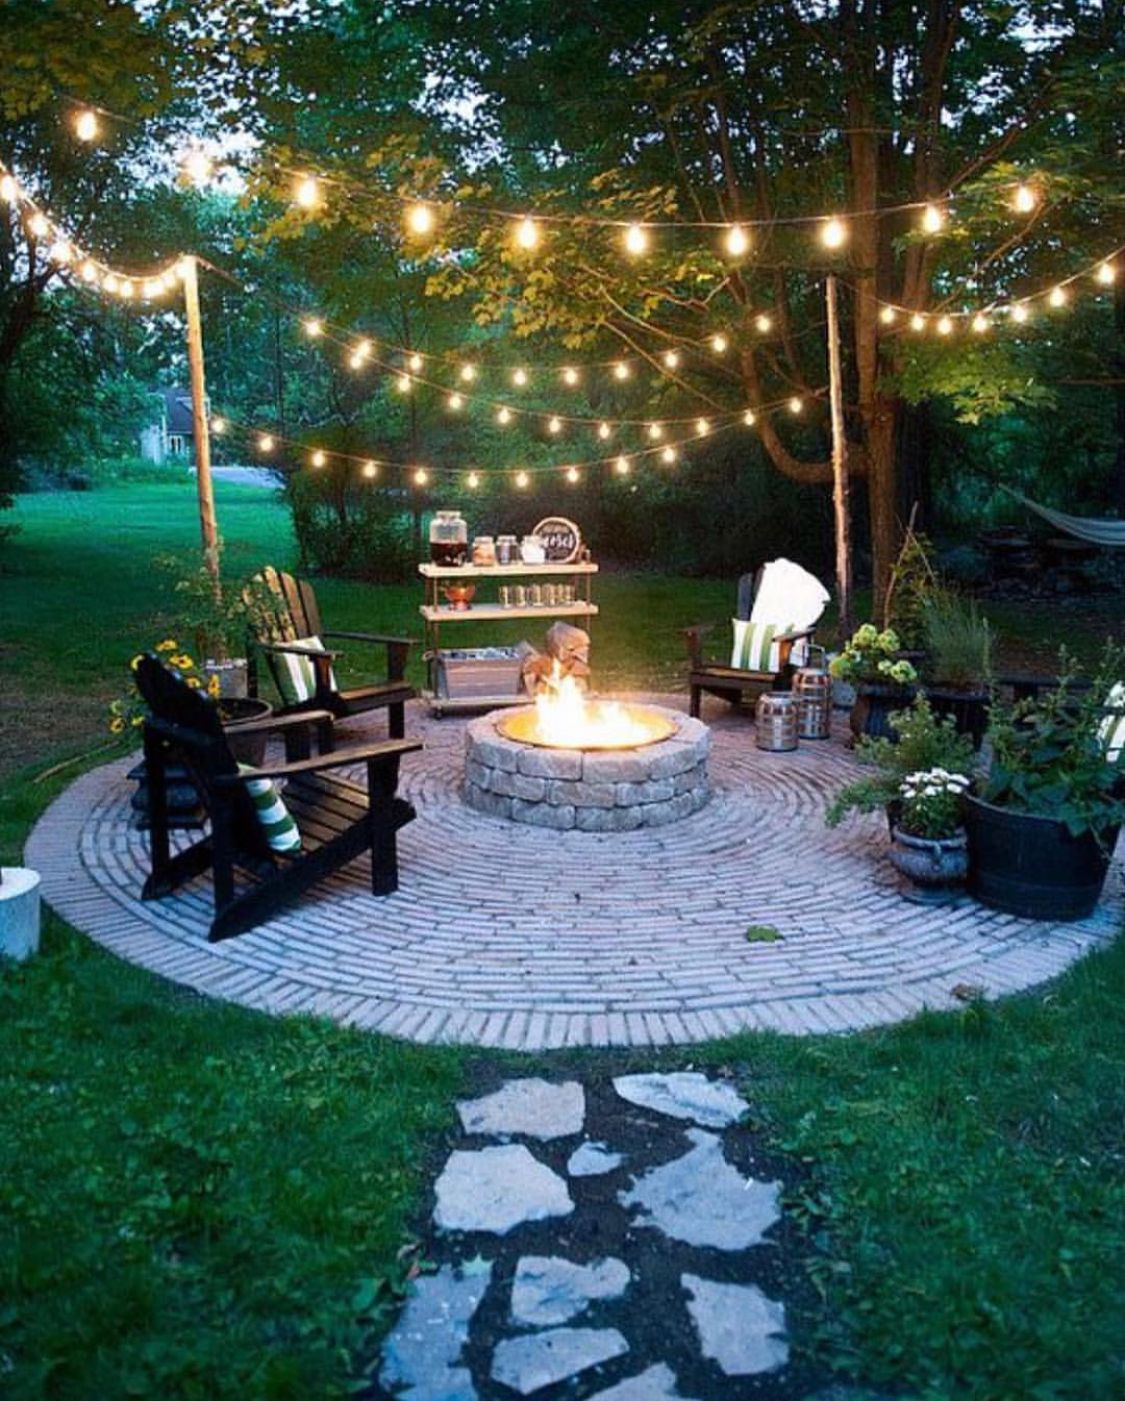 Simple Outdoor Area Love The Cute Lights Dream Looks For